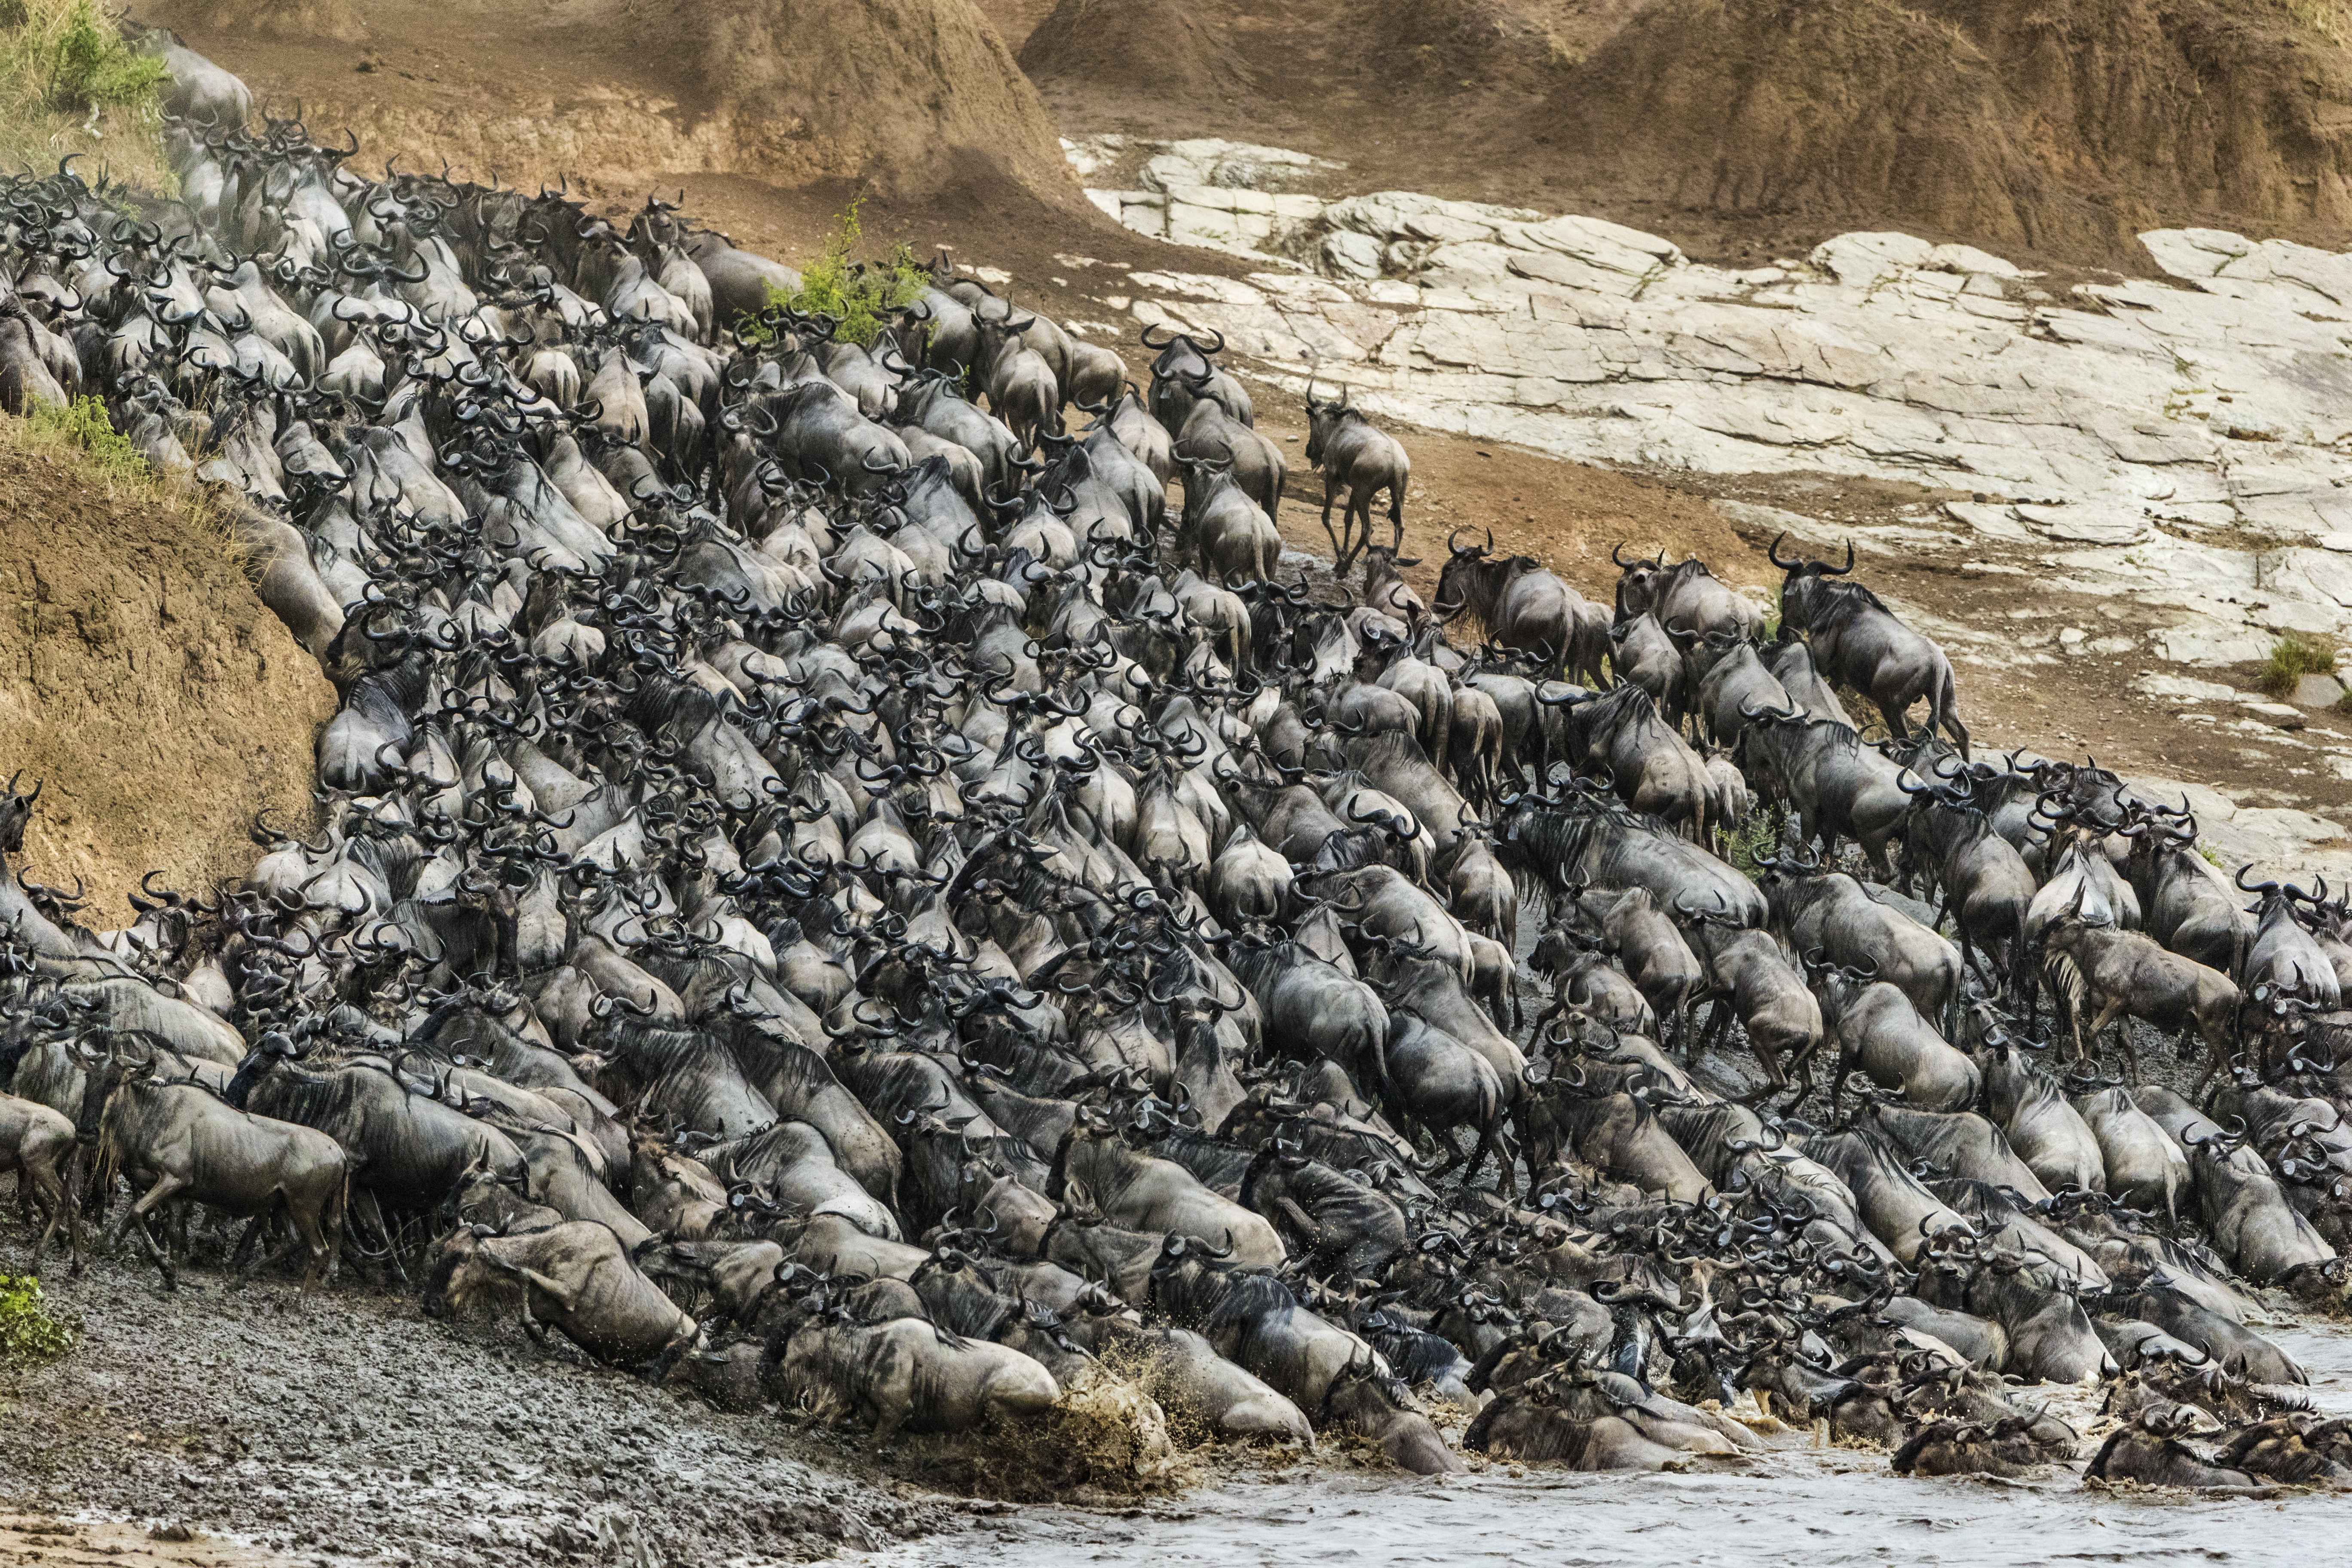 Wildebeest crossing the Mara river (Animal Planet/PA)